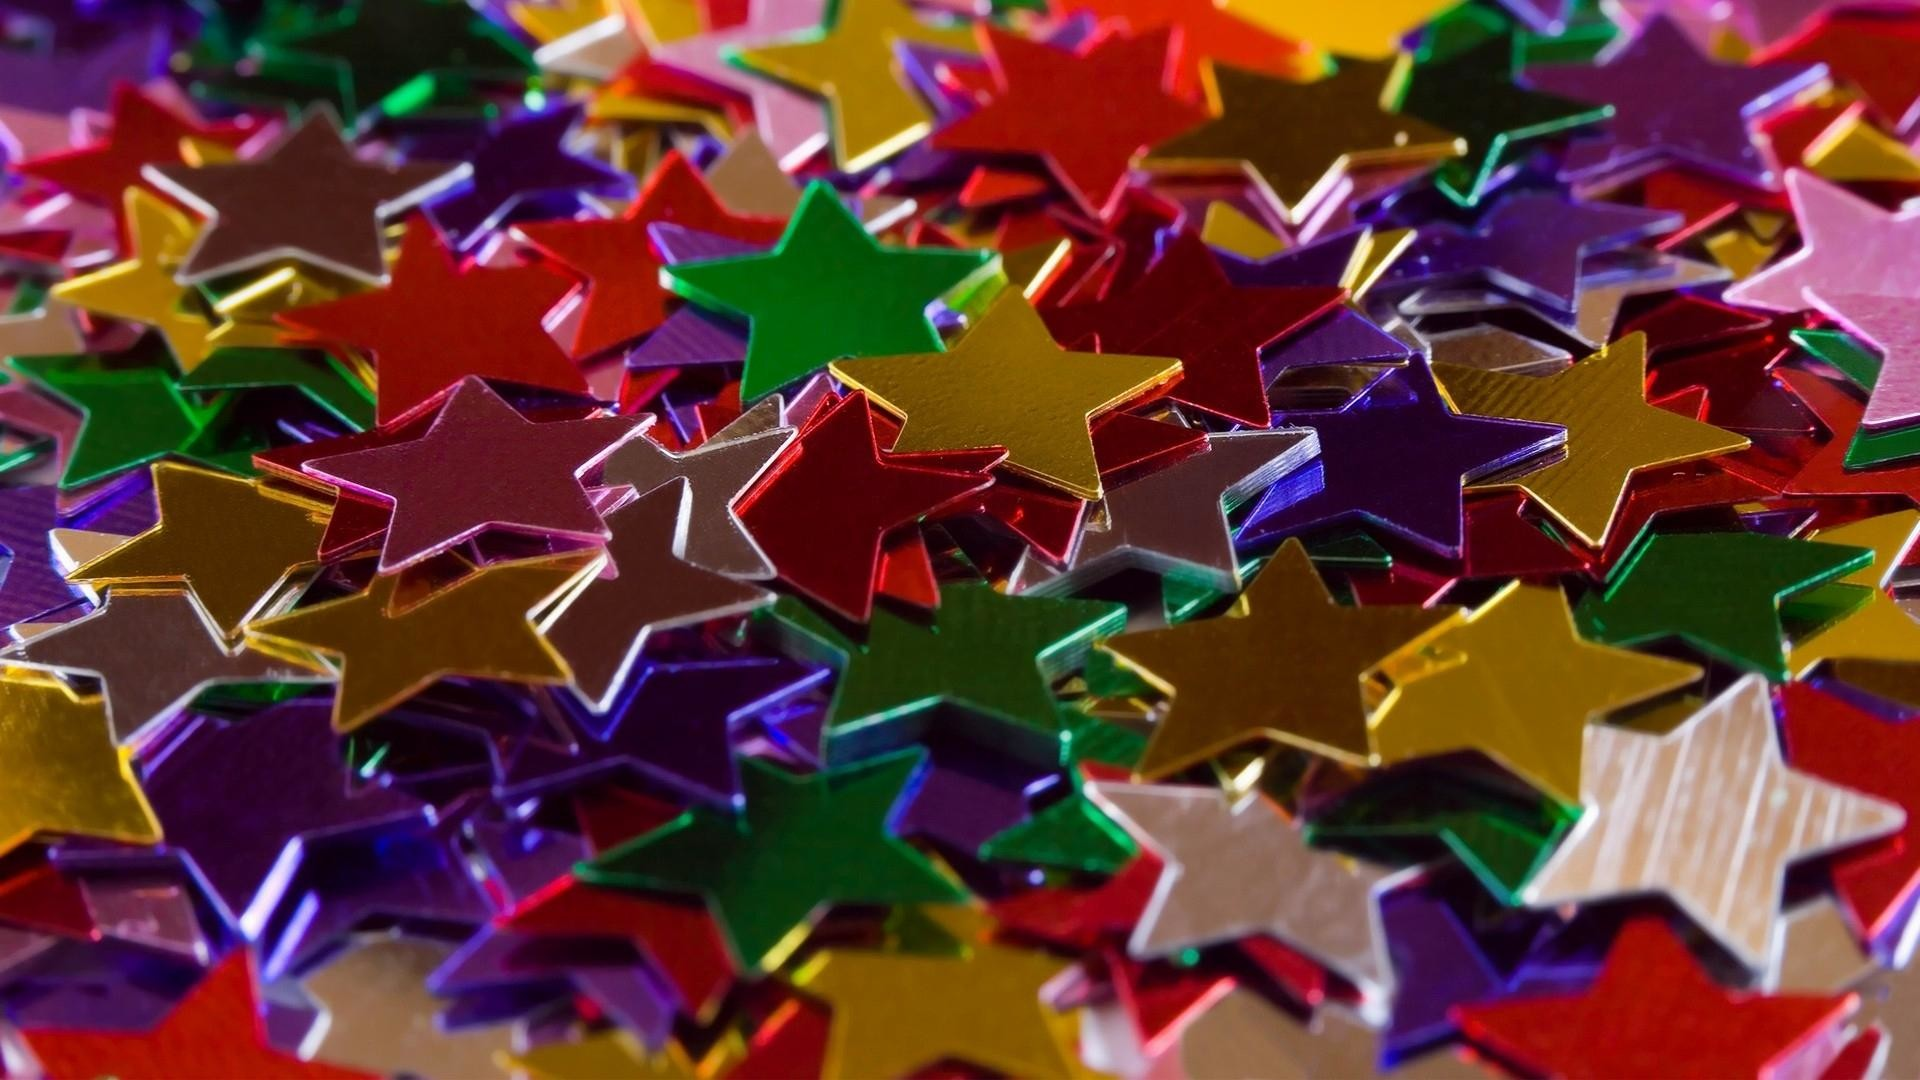 Colorful-stars-background-wallpaper-HD